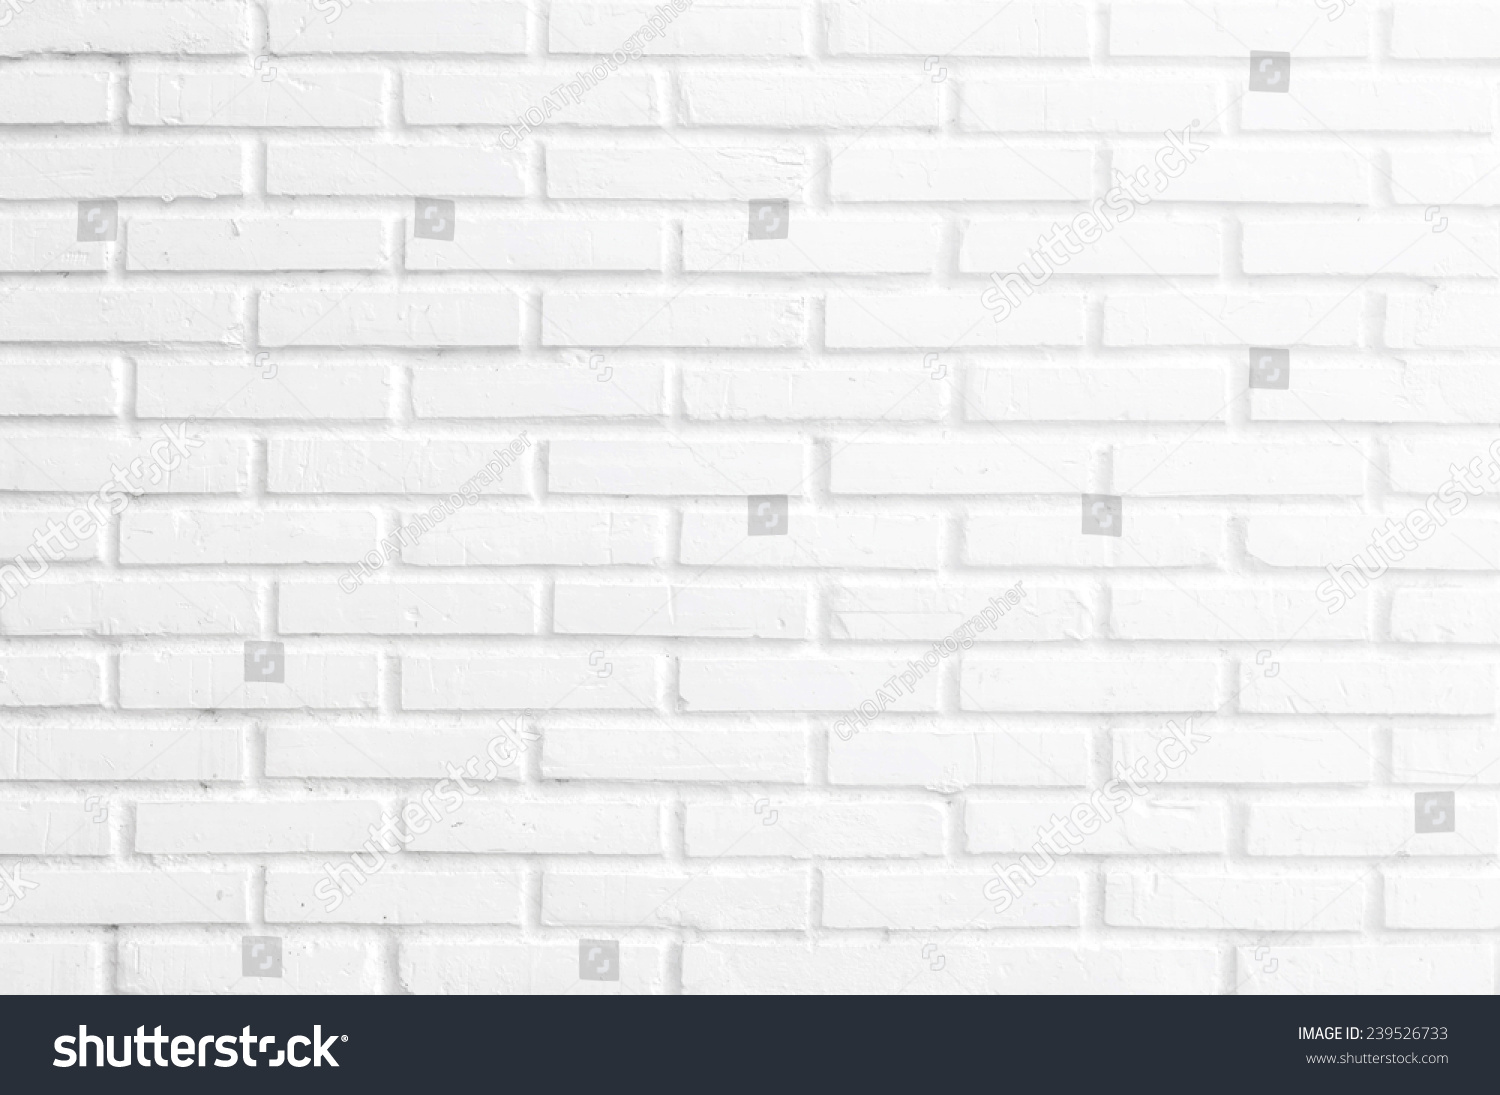 Bathroom Wallpaper Concept Close Up Modern White Bricks Wall Texture Background